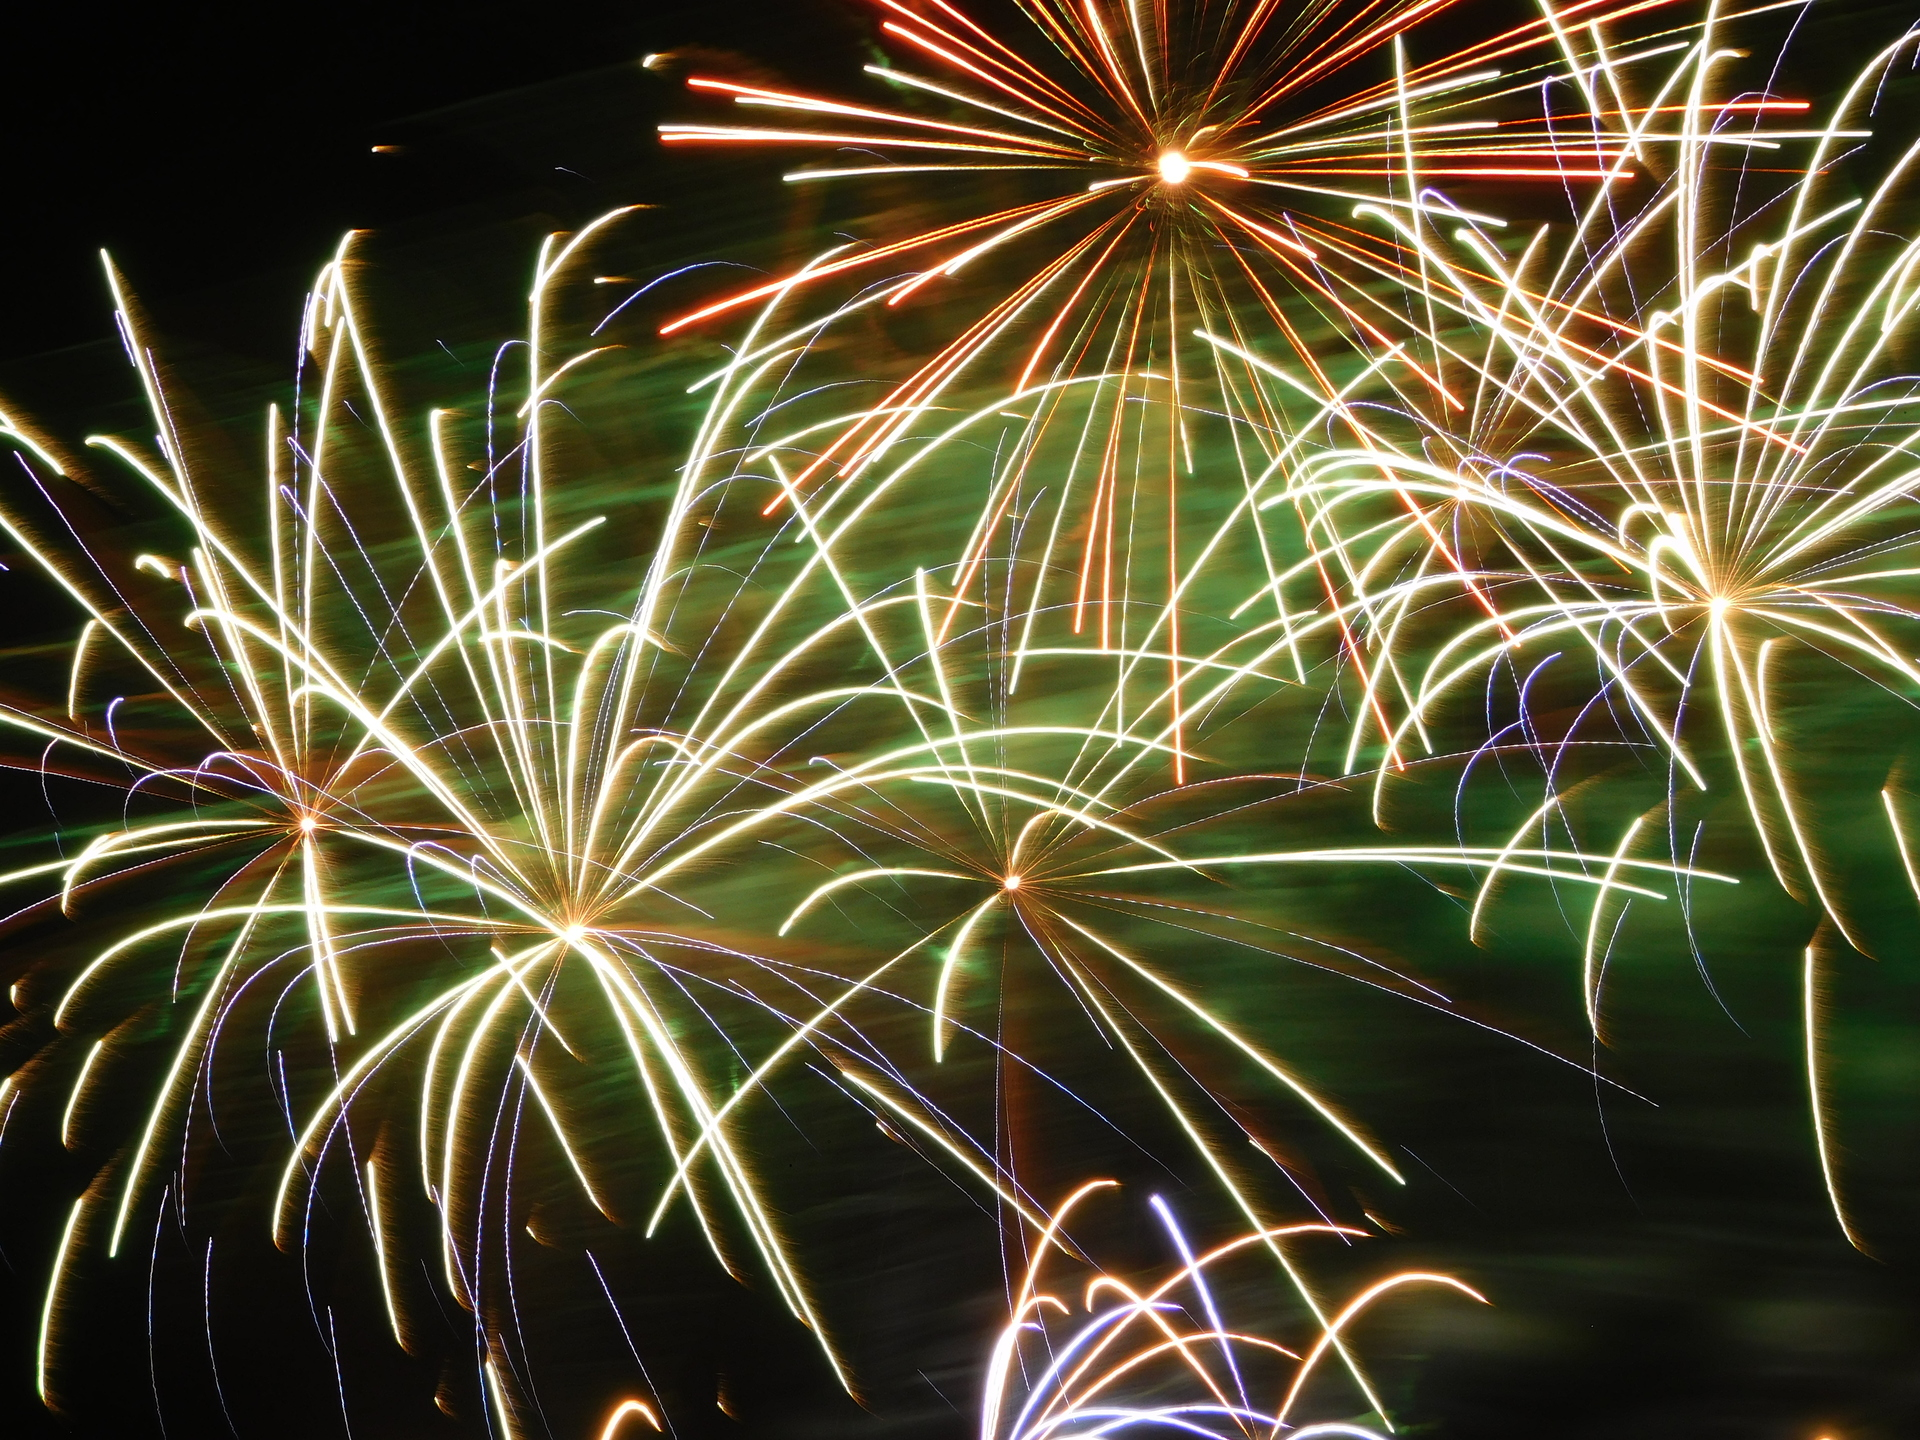 Fireworks | rick.cognyl.fournier, abstract, bright, celebration